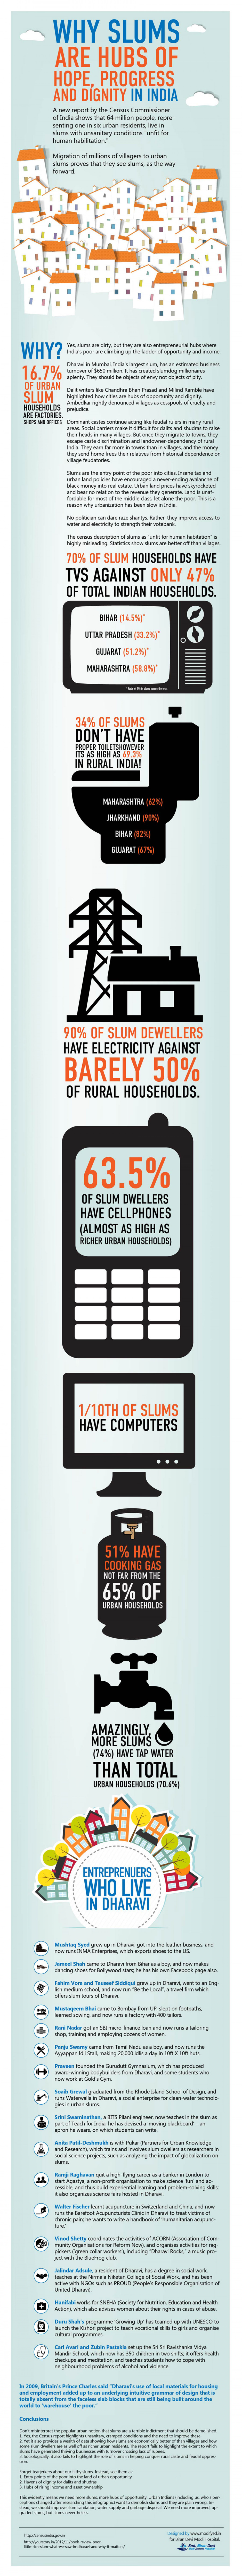 Why slums are hubs of hope, progress and dignity in India Infographic